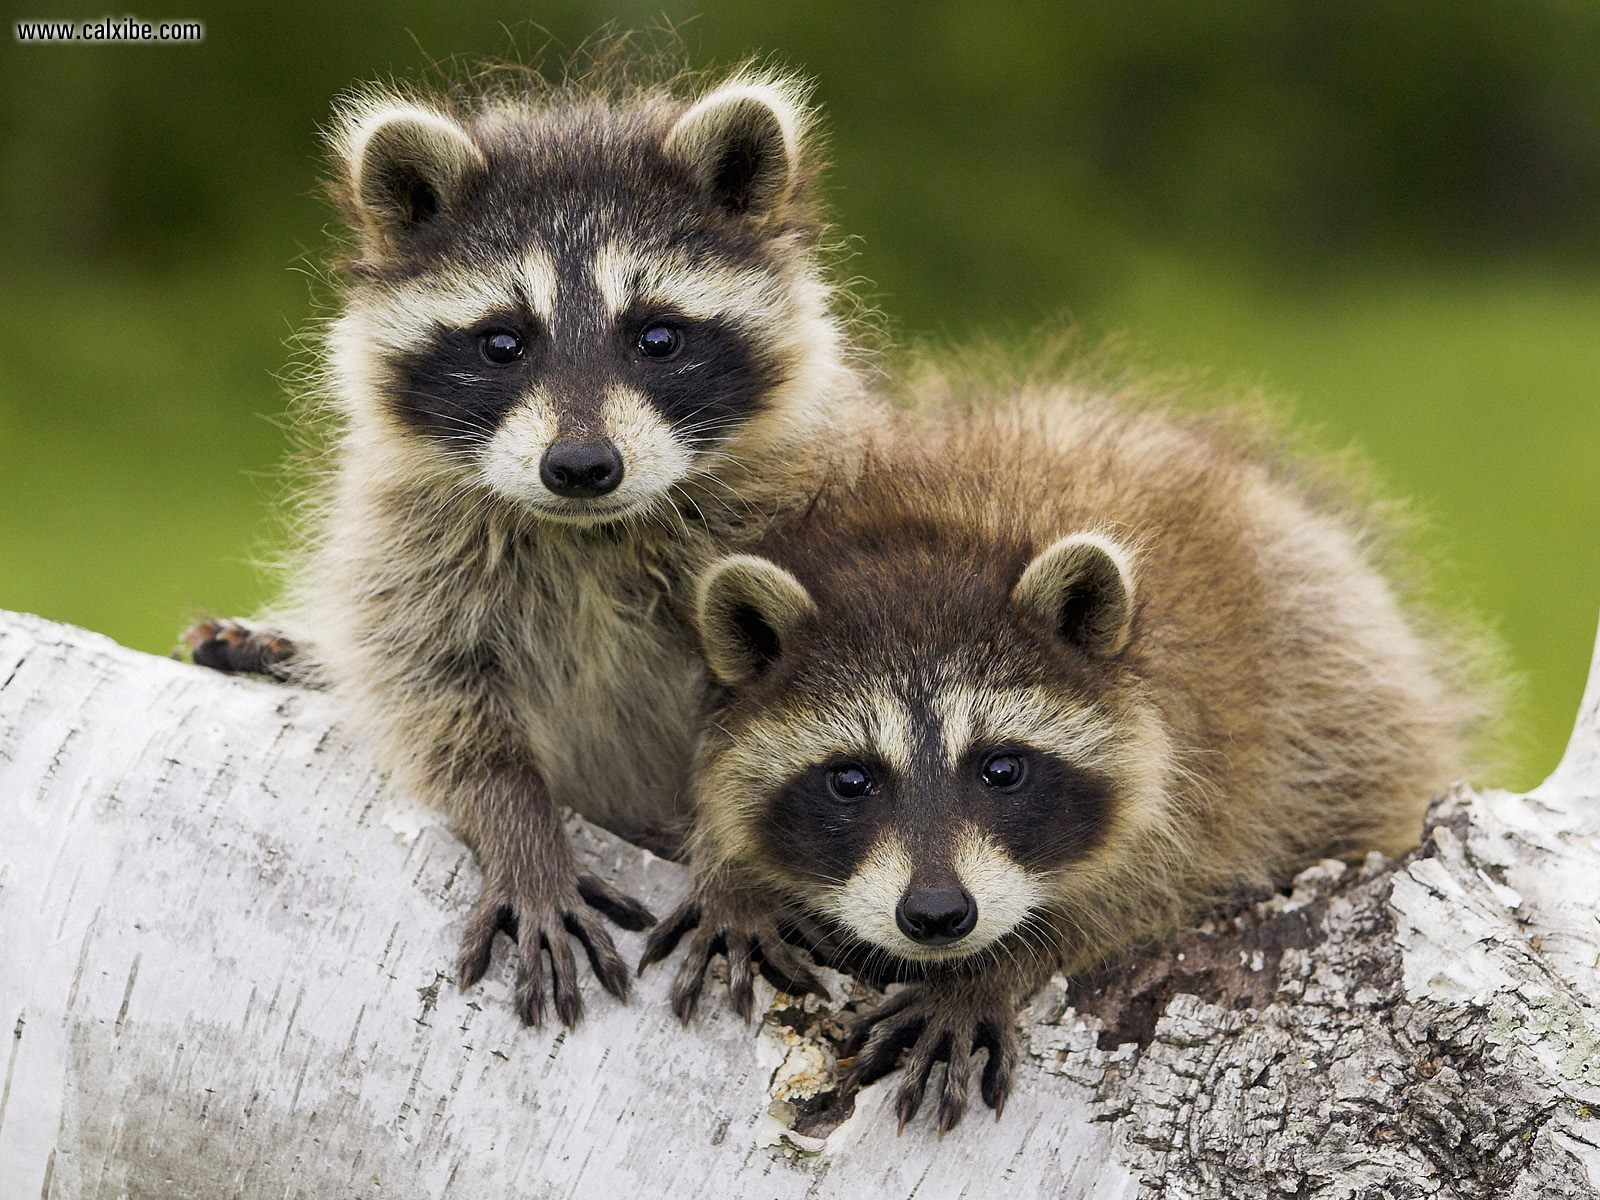 all about animals: Raccoons